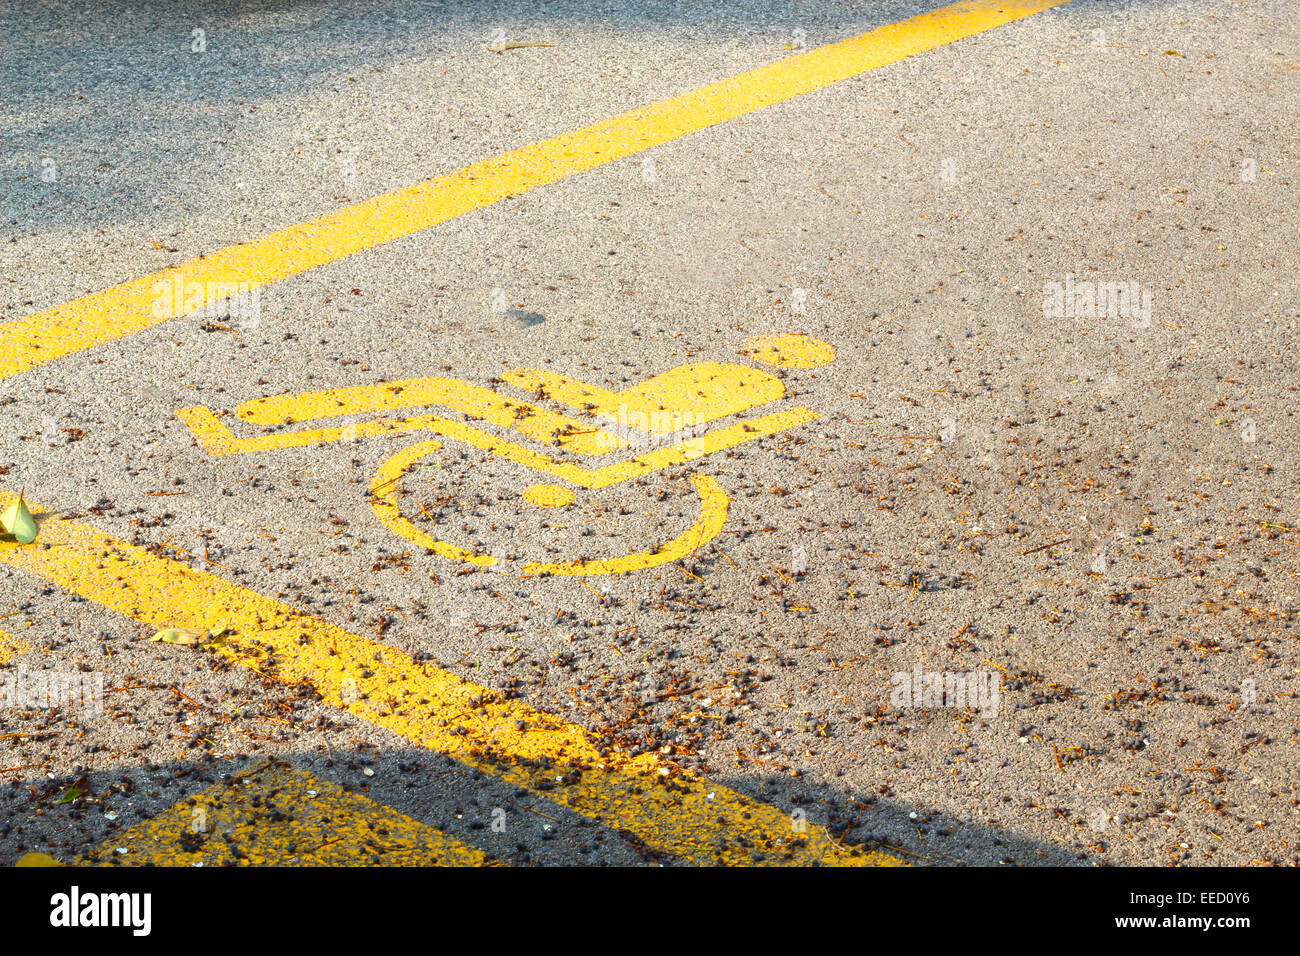 Particular of reserved parking for disabled person - Stock Image